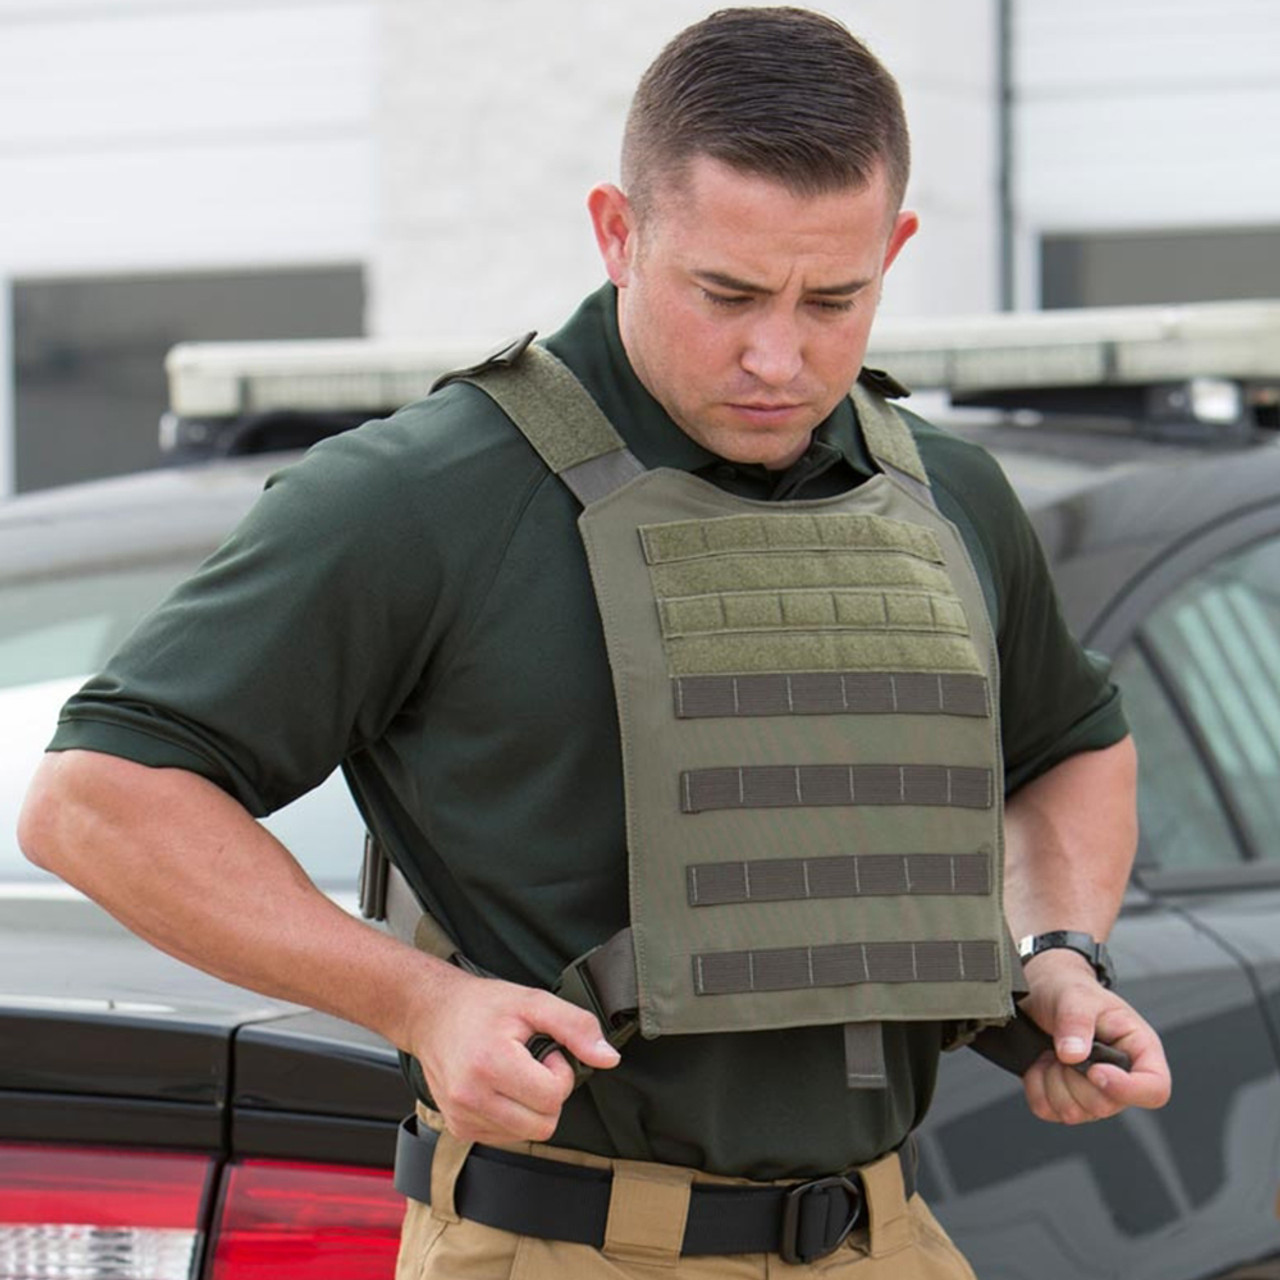 Propper CRITICAL RESPONSE® KIT, black, one-size-fits-all, includes Level 4 Bulletproof Plates (front and back), Exterior Vest, Bag, & Placards, In Stock